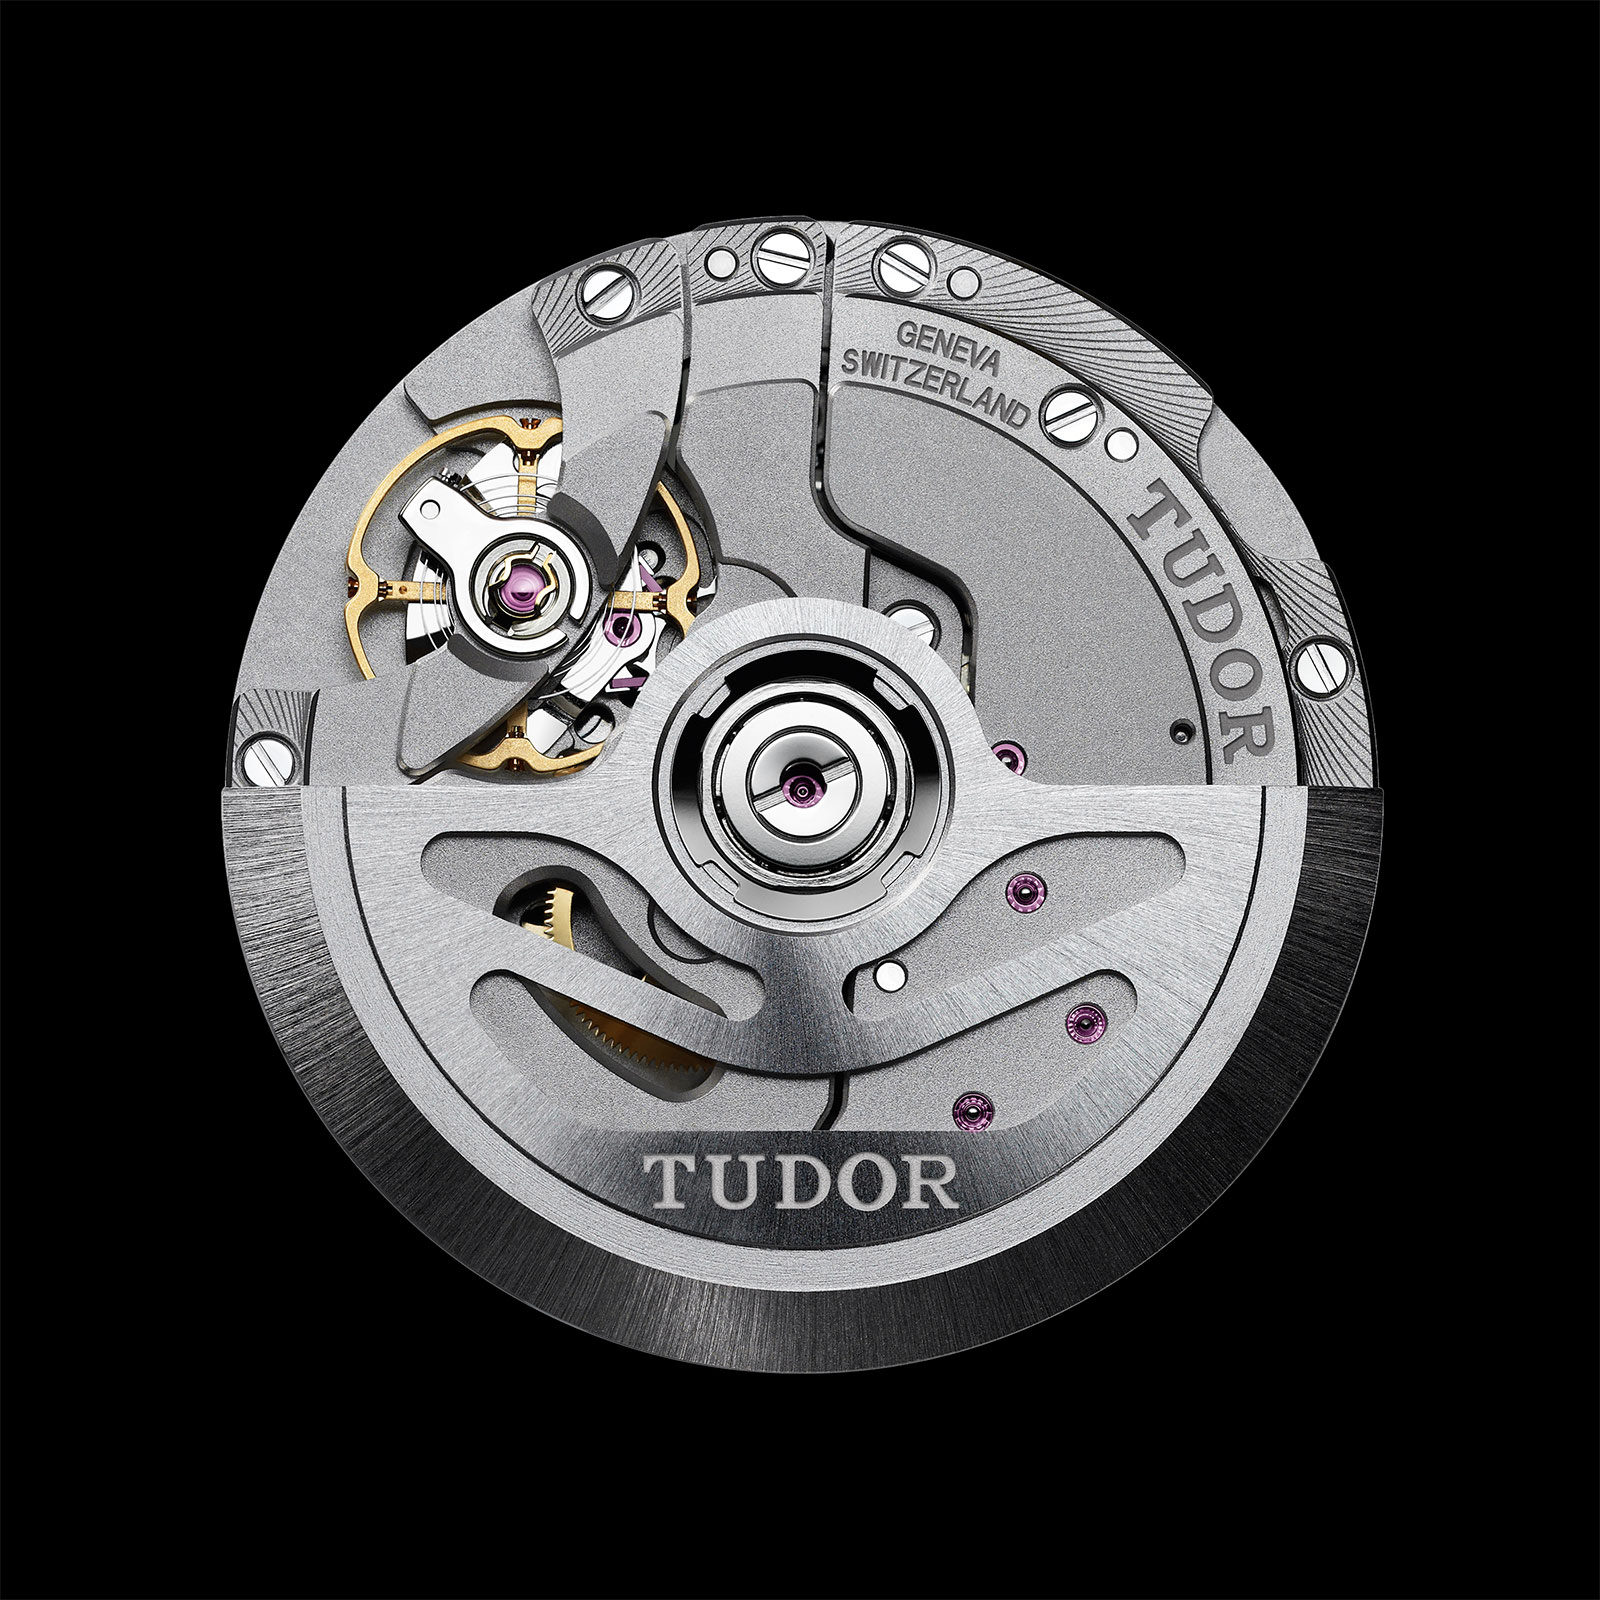 Tudor MT5652 movement